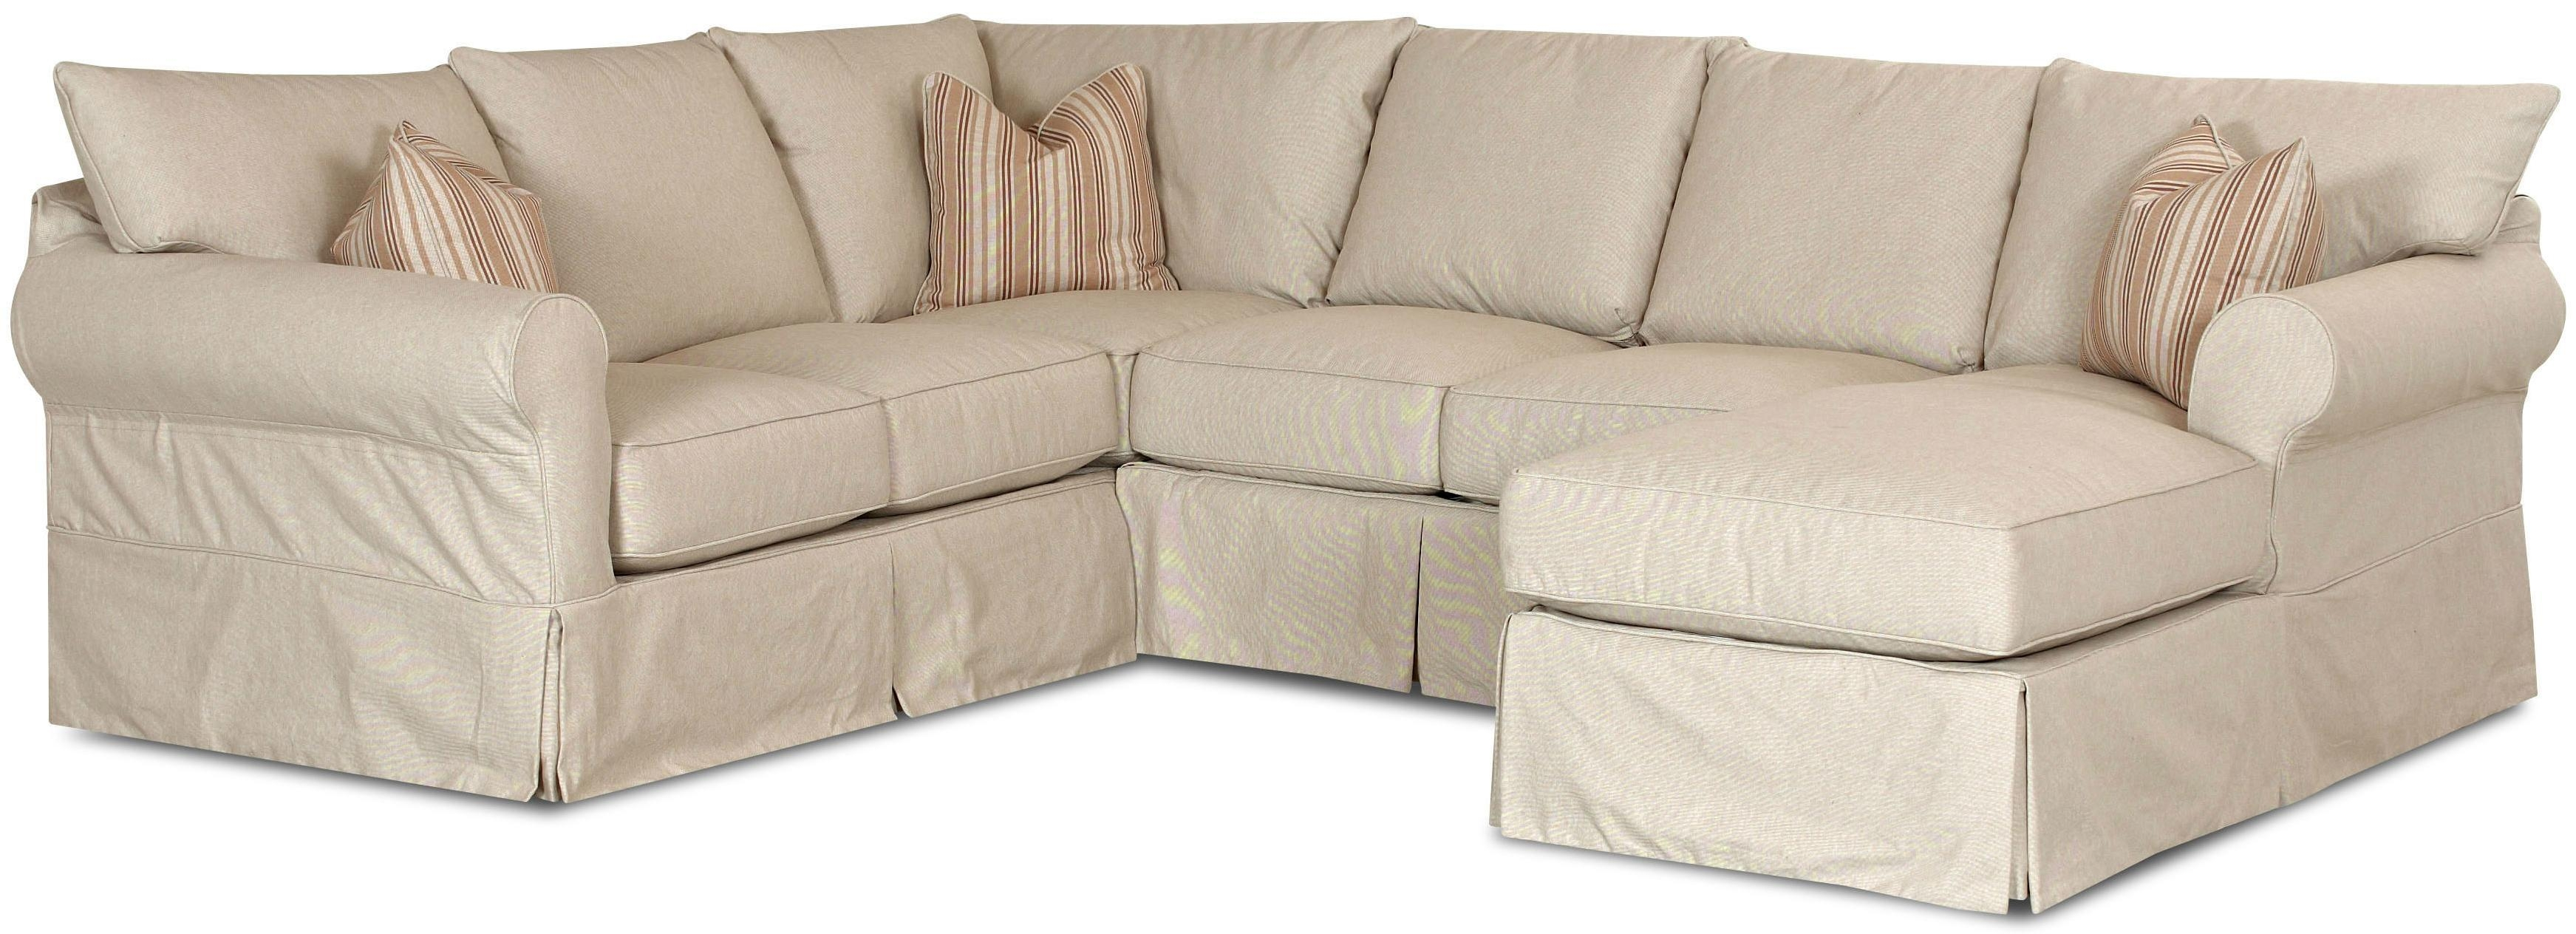 Inspirations: Interesting Furniture Sectional Sofa Slipcovers For Throughout Sectional Sofa Covers (Image 9 of 20)